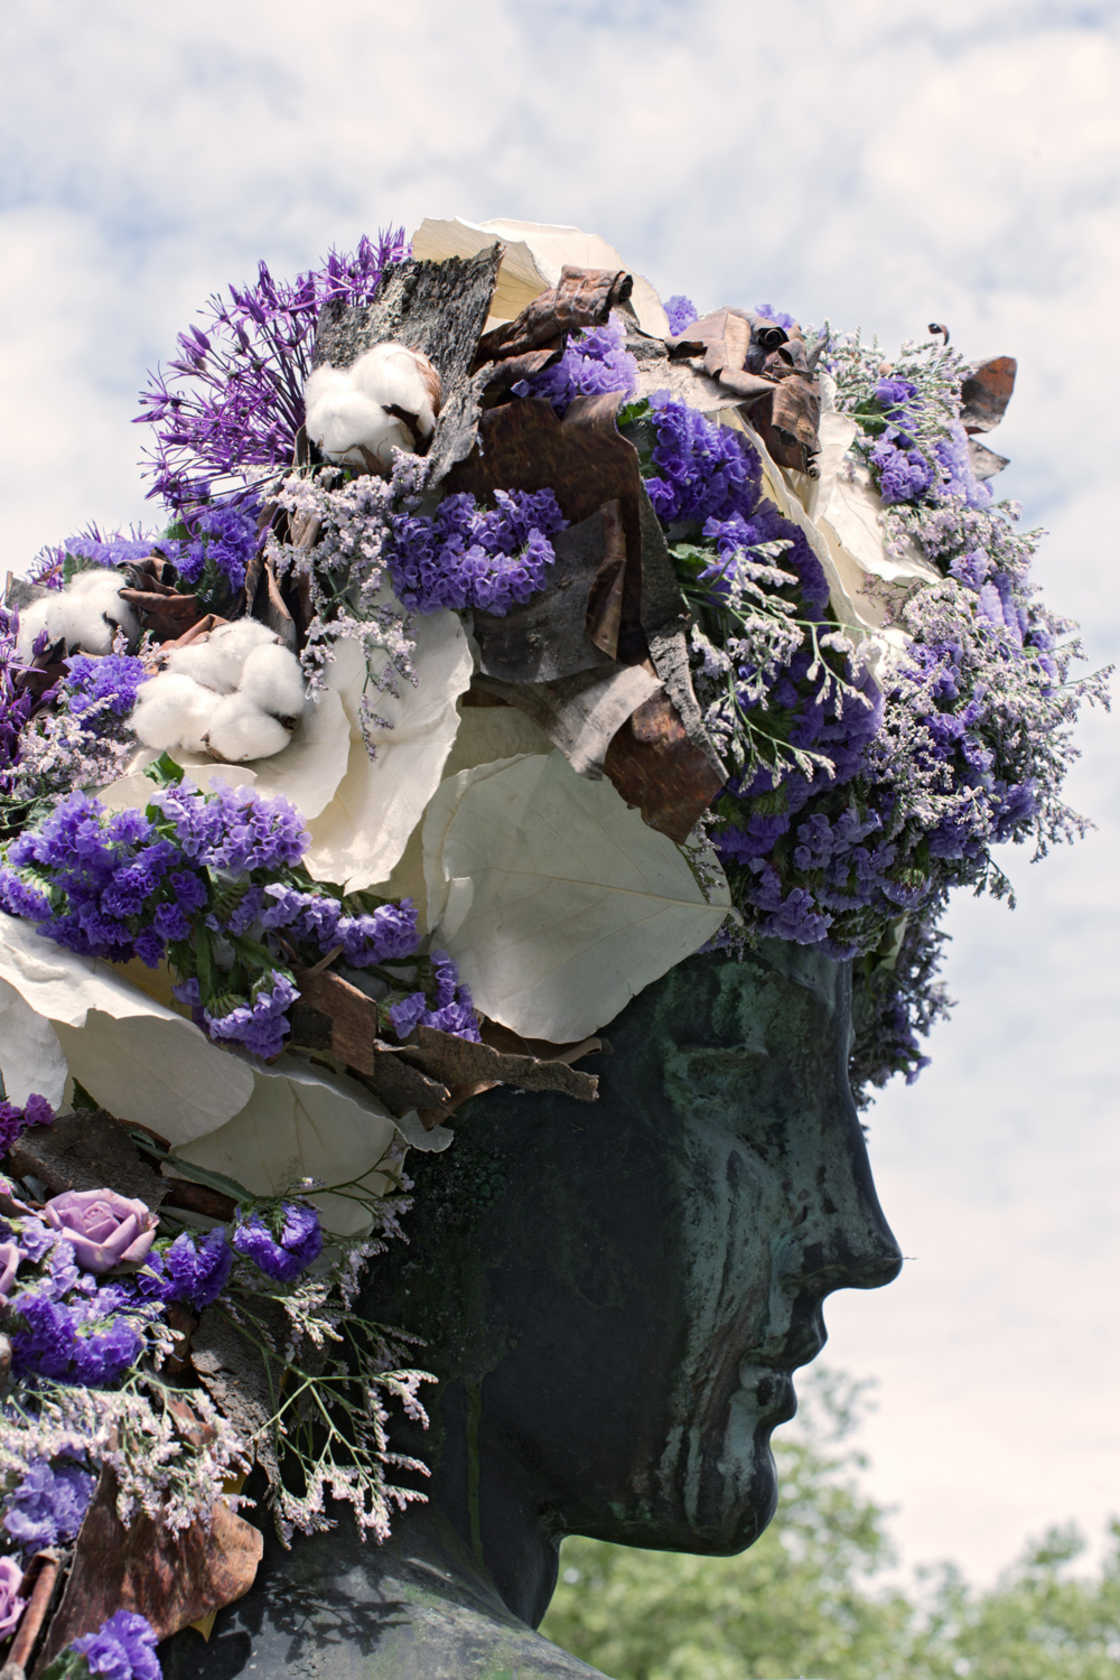 Vegetal by Nature - When an artist is styling statues with flowers